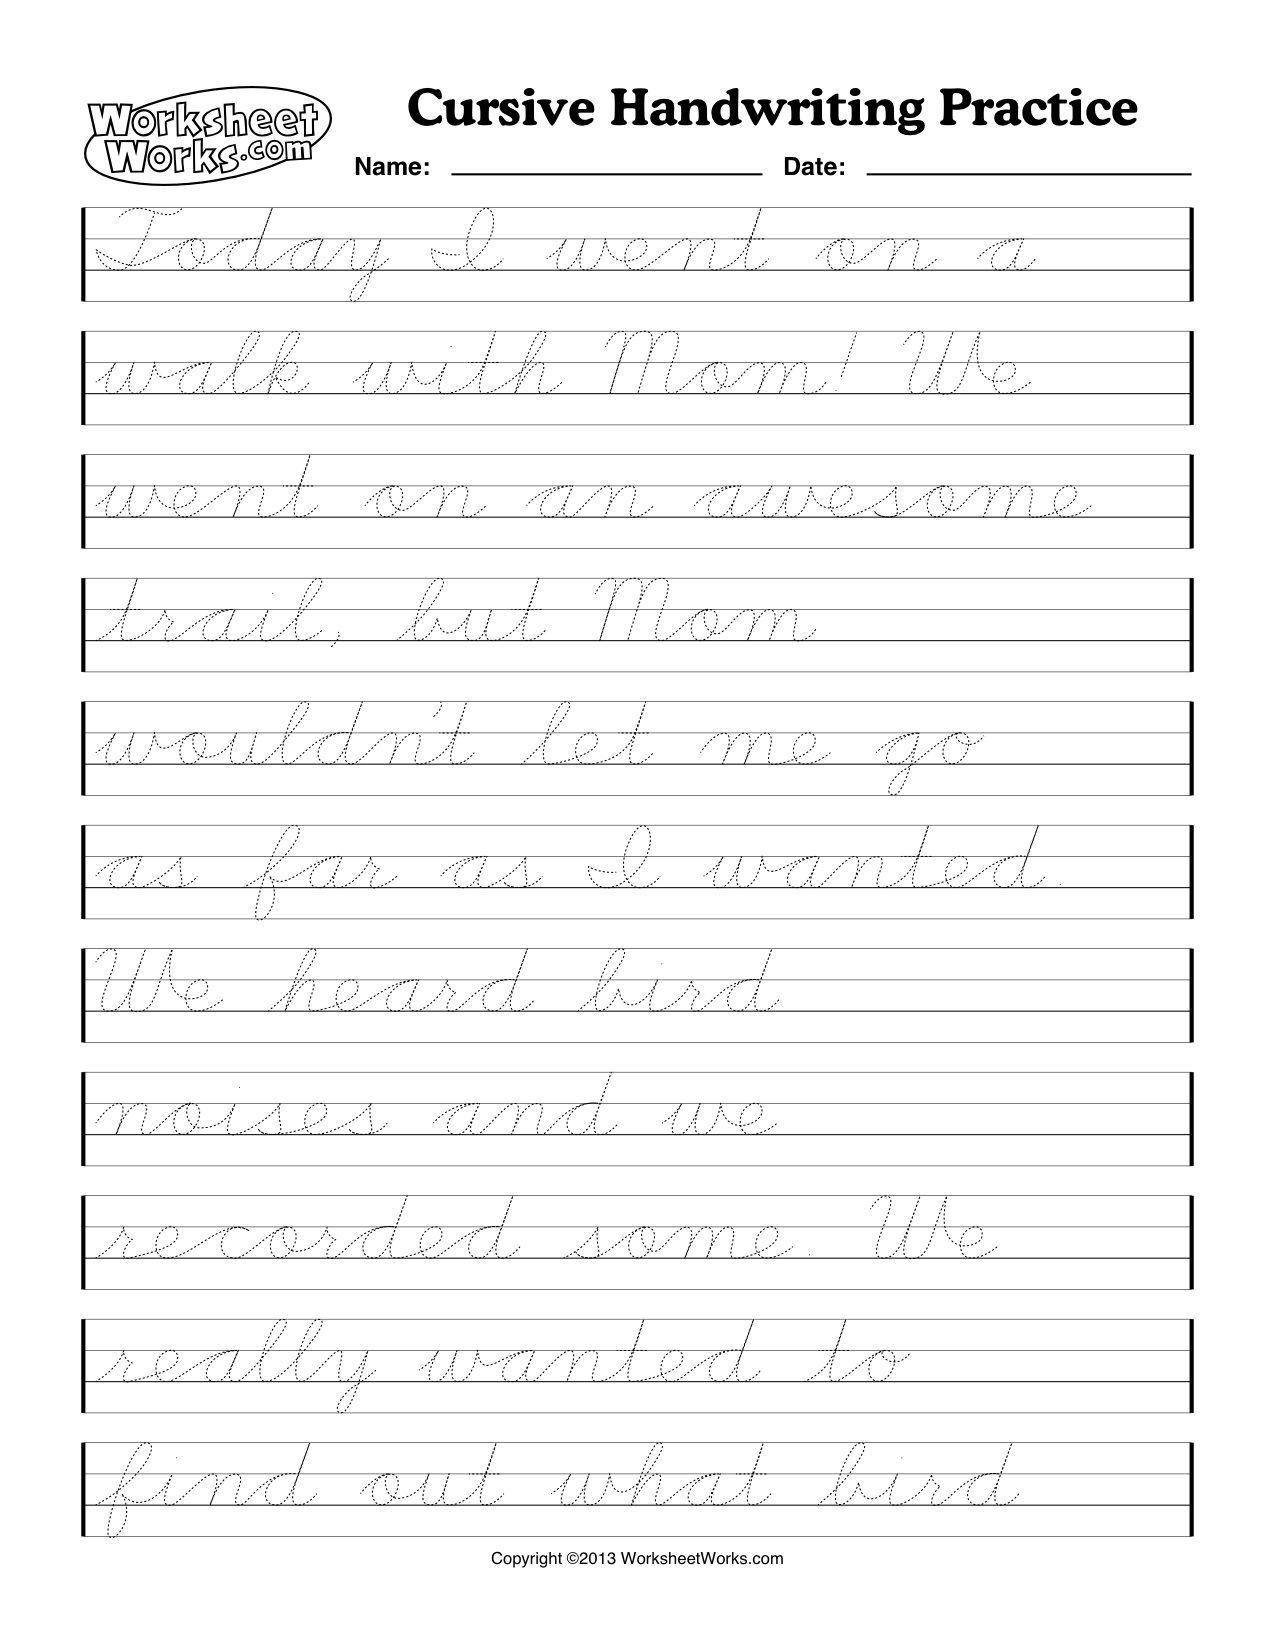 Cursive Handwriting Worksheets | Cursive Writing Worksheet